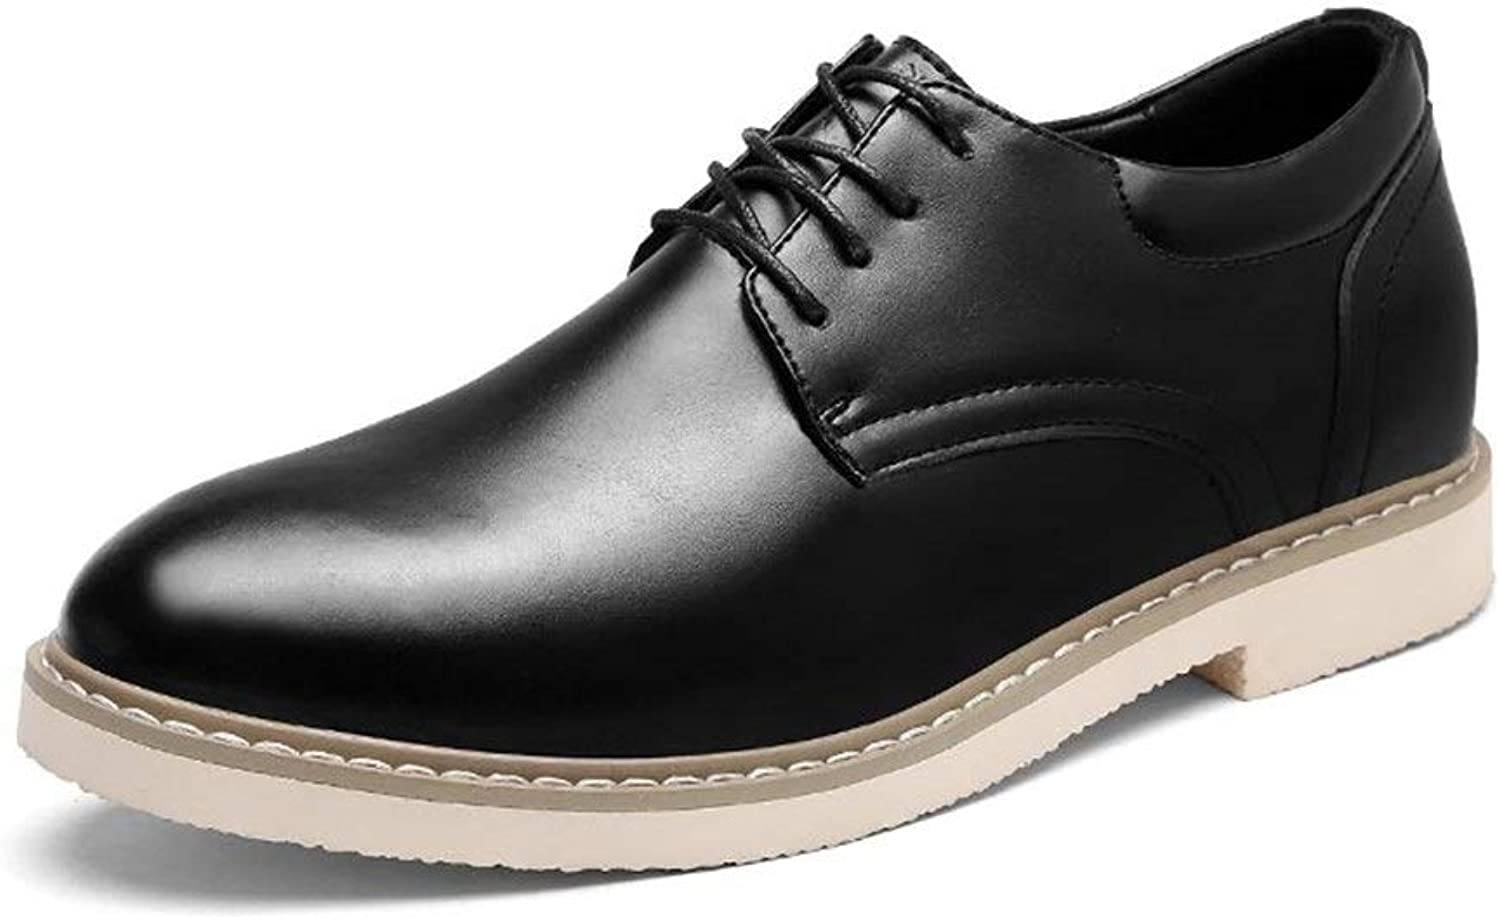 Easy Go Shopping Oxford shoes Formal shoes For Men Lace Up OX Leather Height Increasing Insole Pure colors Cricket shoes (color   Black, Size   7 UK)